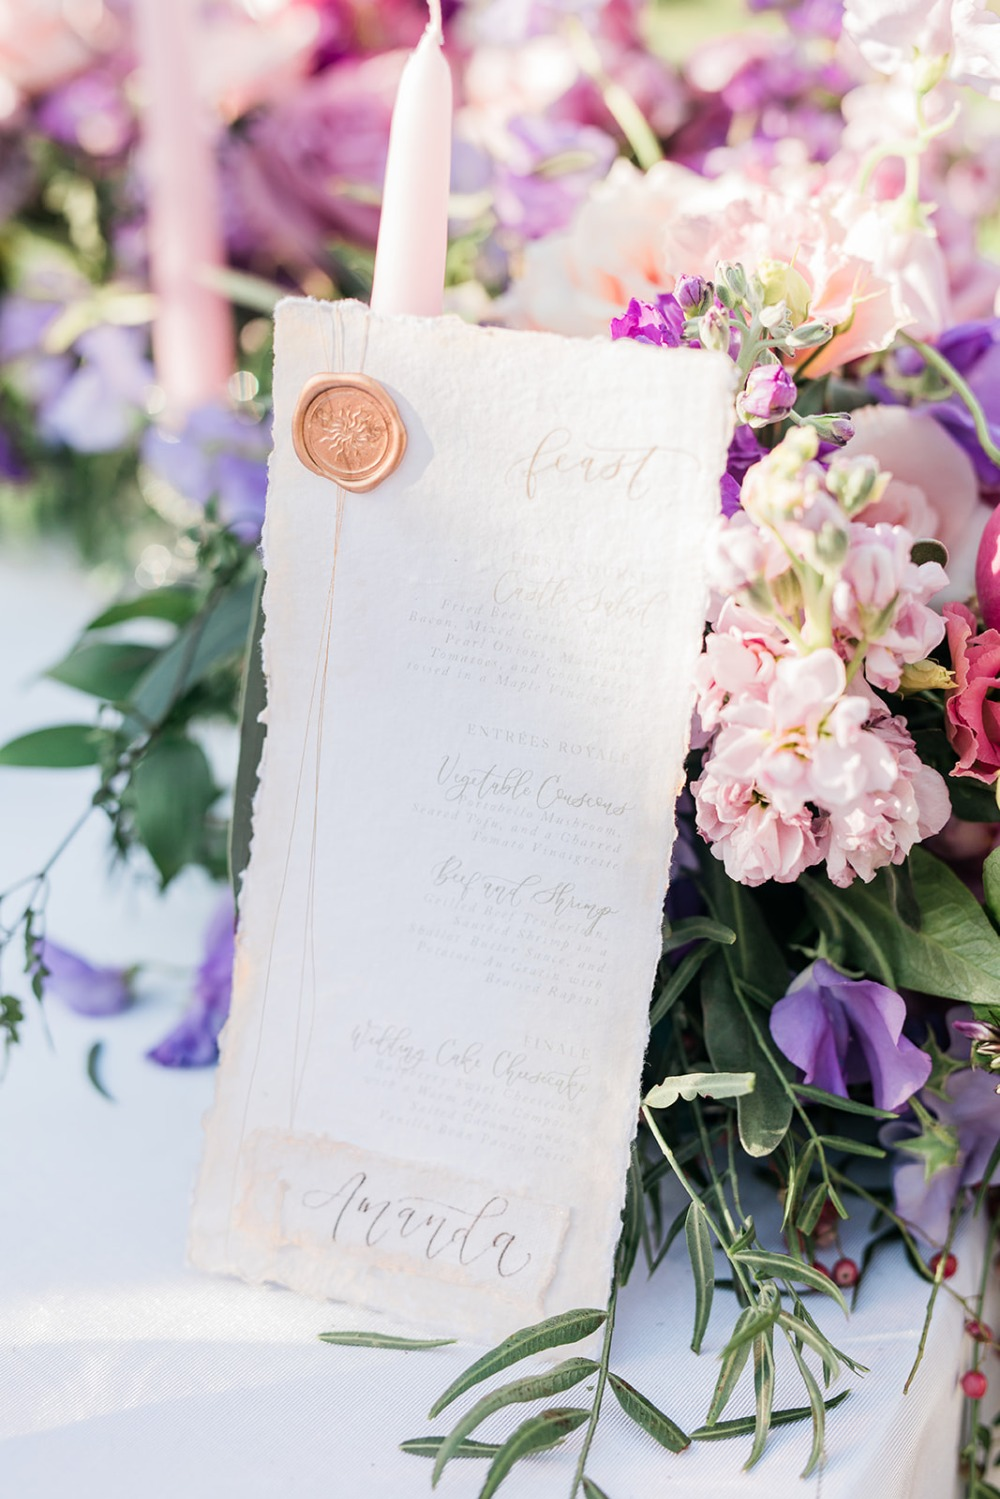 wedding menu with romantic calligraphy